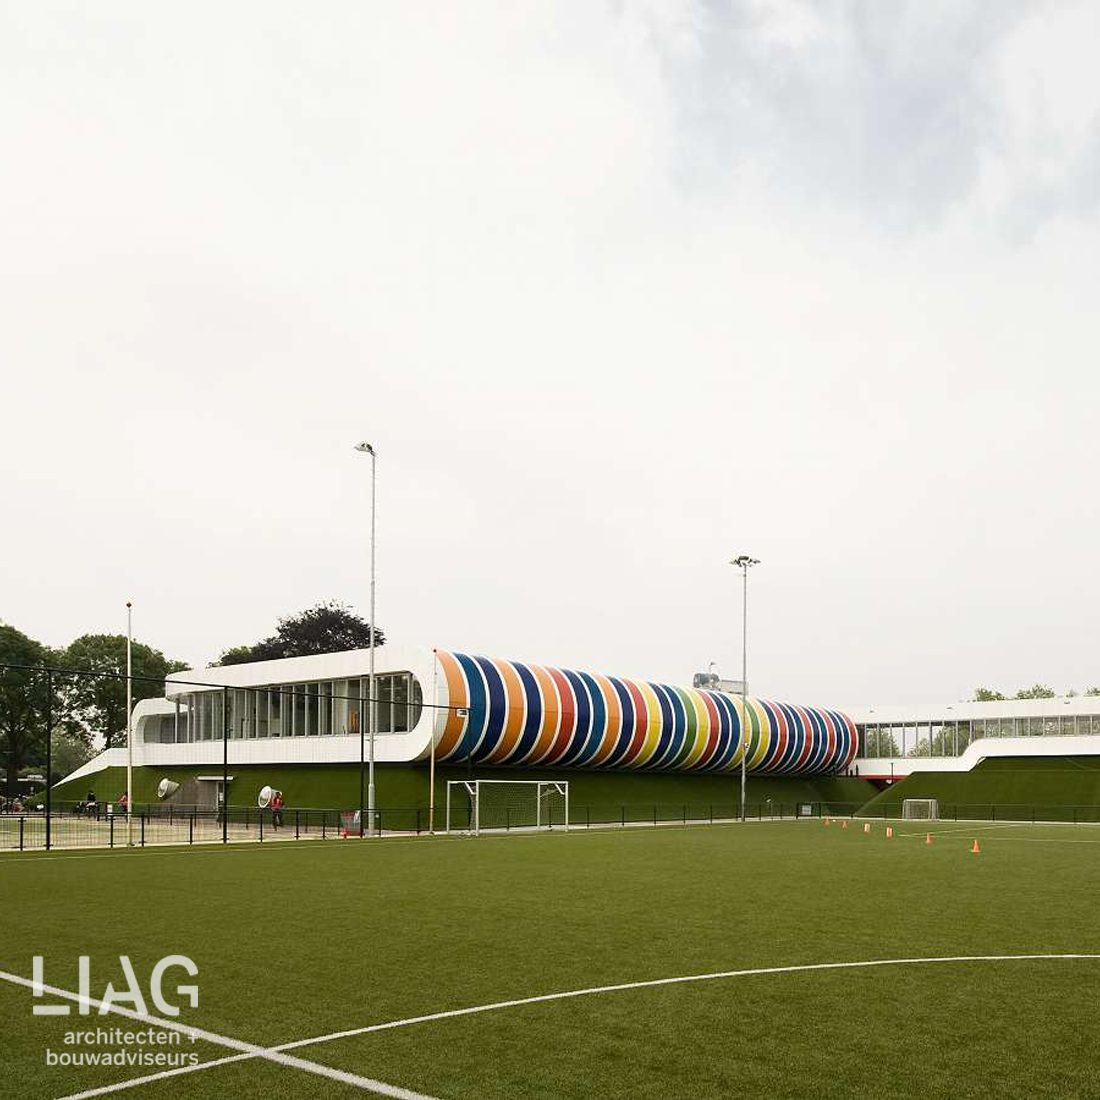 duurzaam multifunctioneel sportcomplex